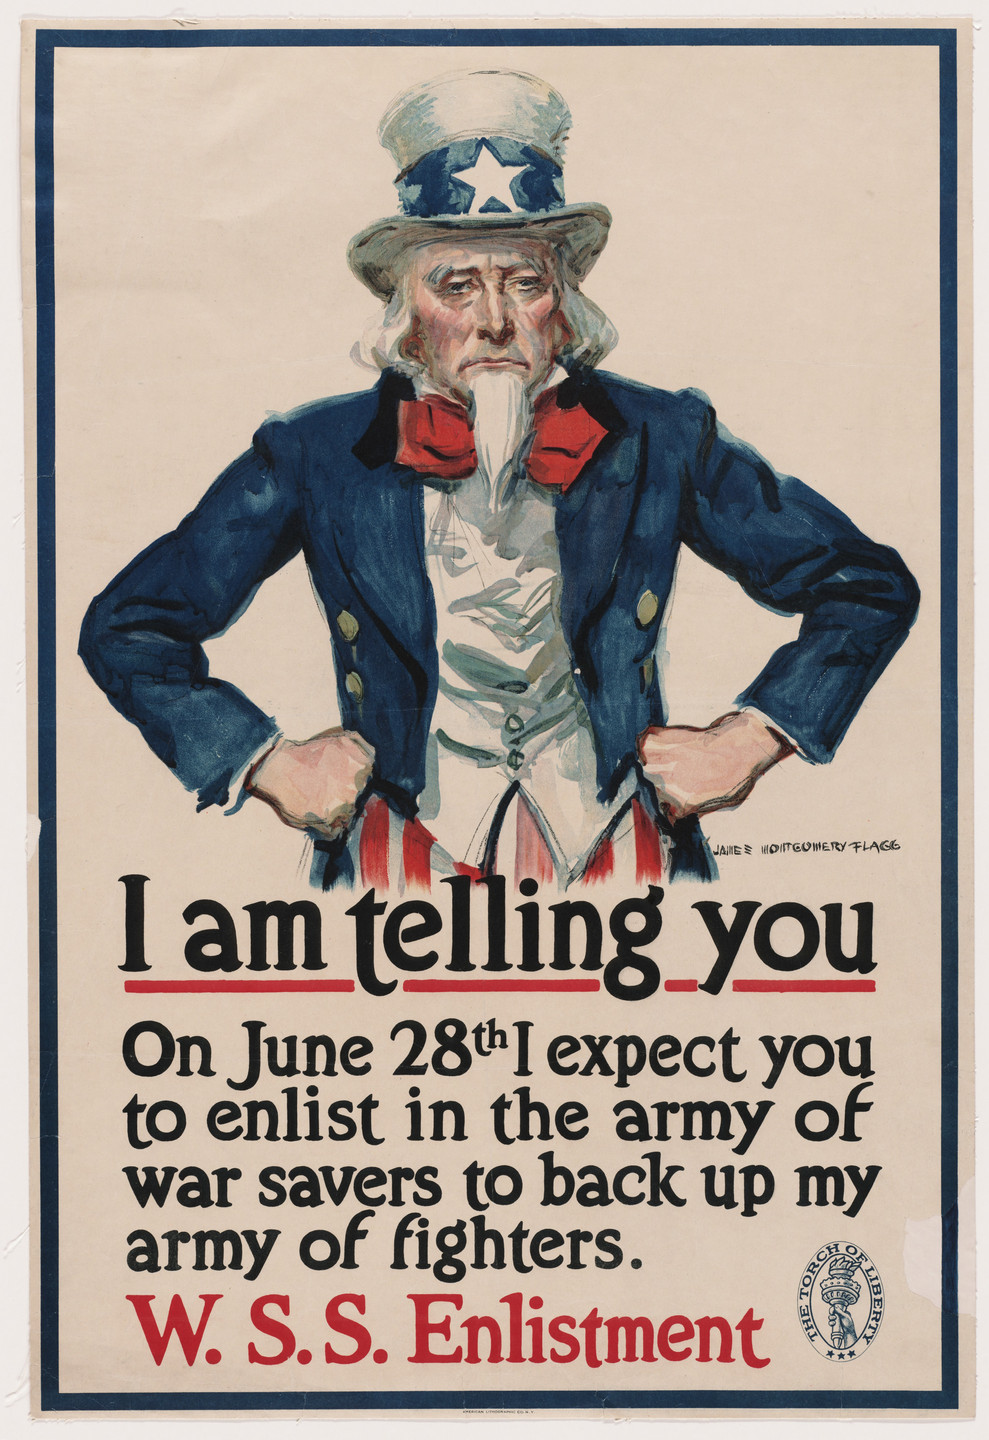 James Montgomery Flagg. I am Telling You On June 28th I Expect You to Enlist in the Army of War Savers to Back Up My Army of Fighters, W.S.S. Enlistment. 1918